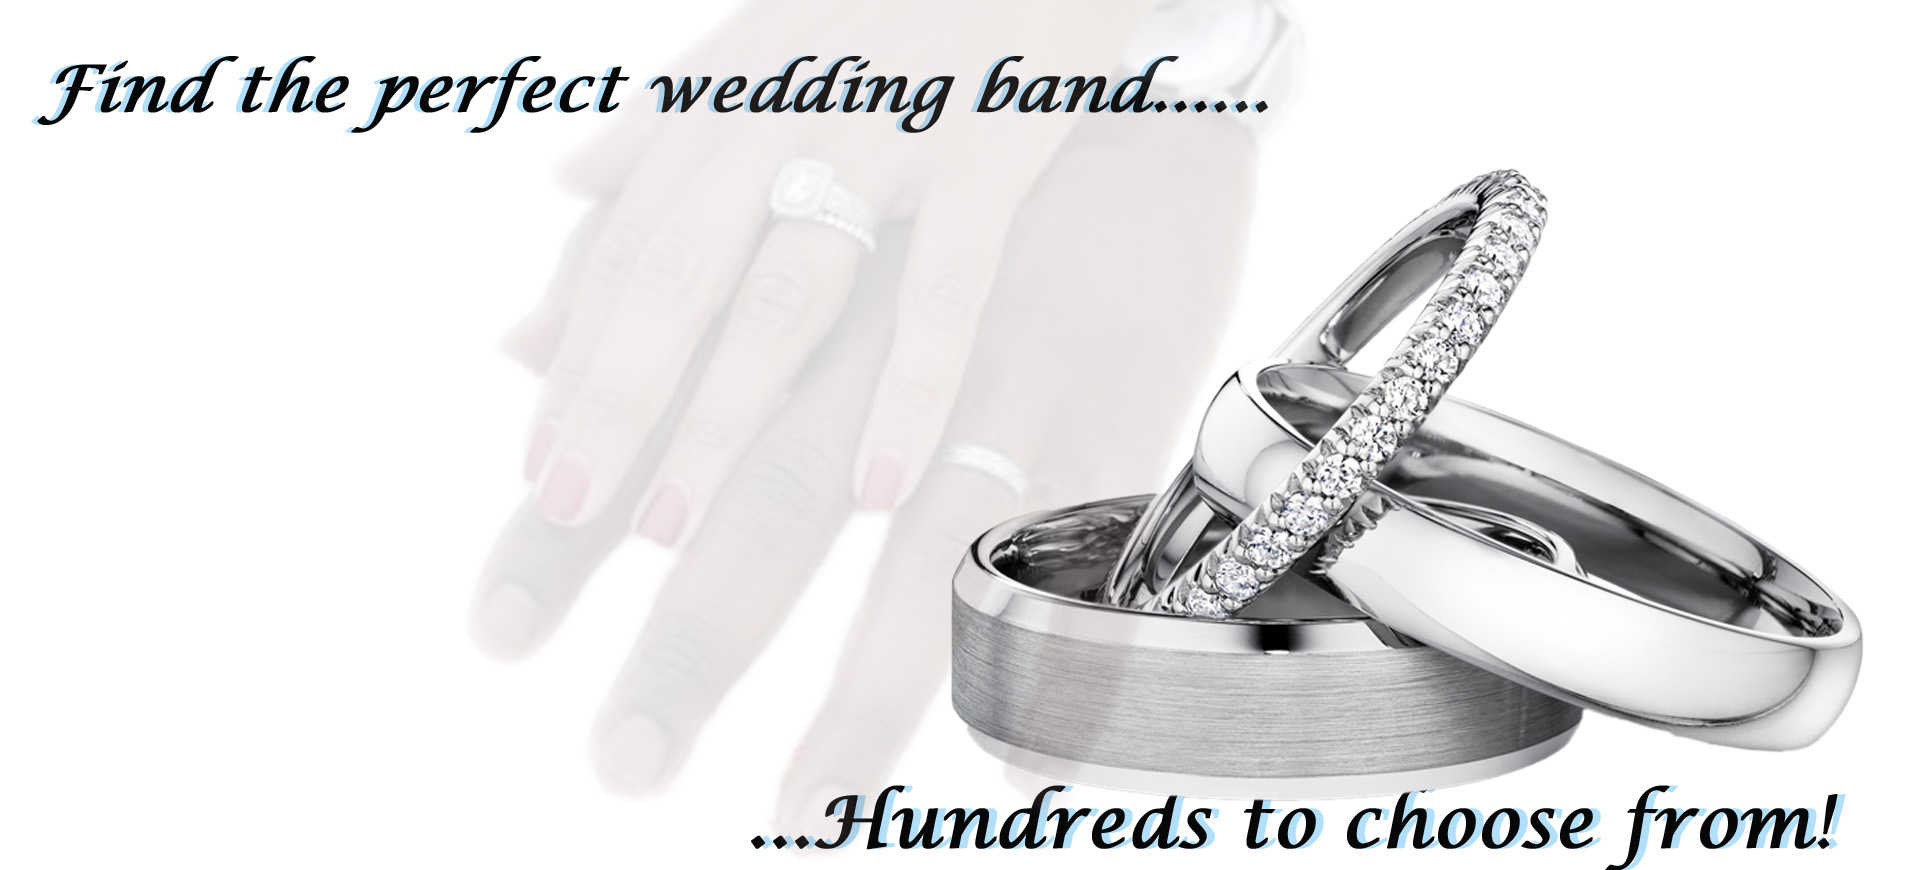 Wedding Band-banner